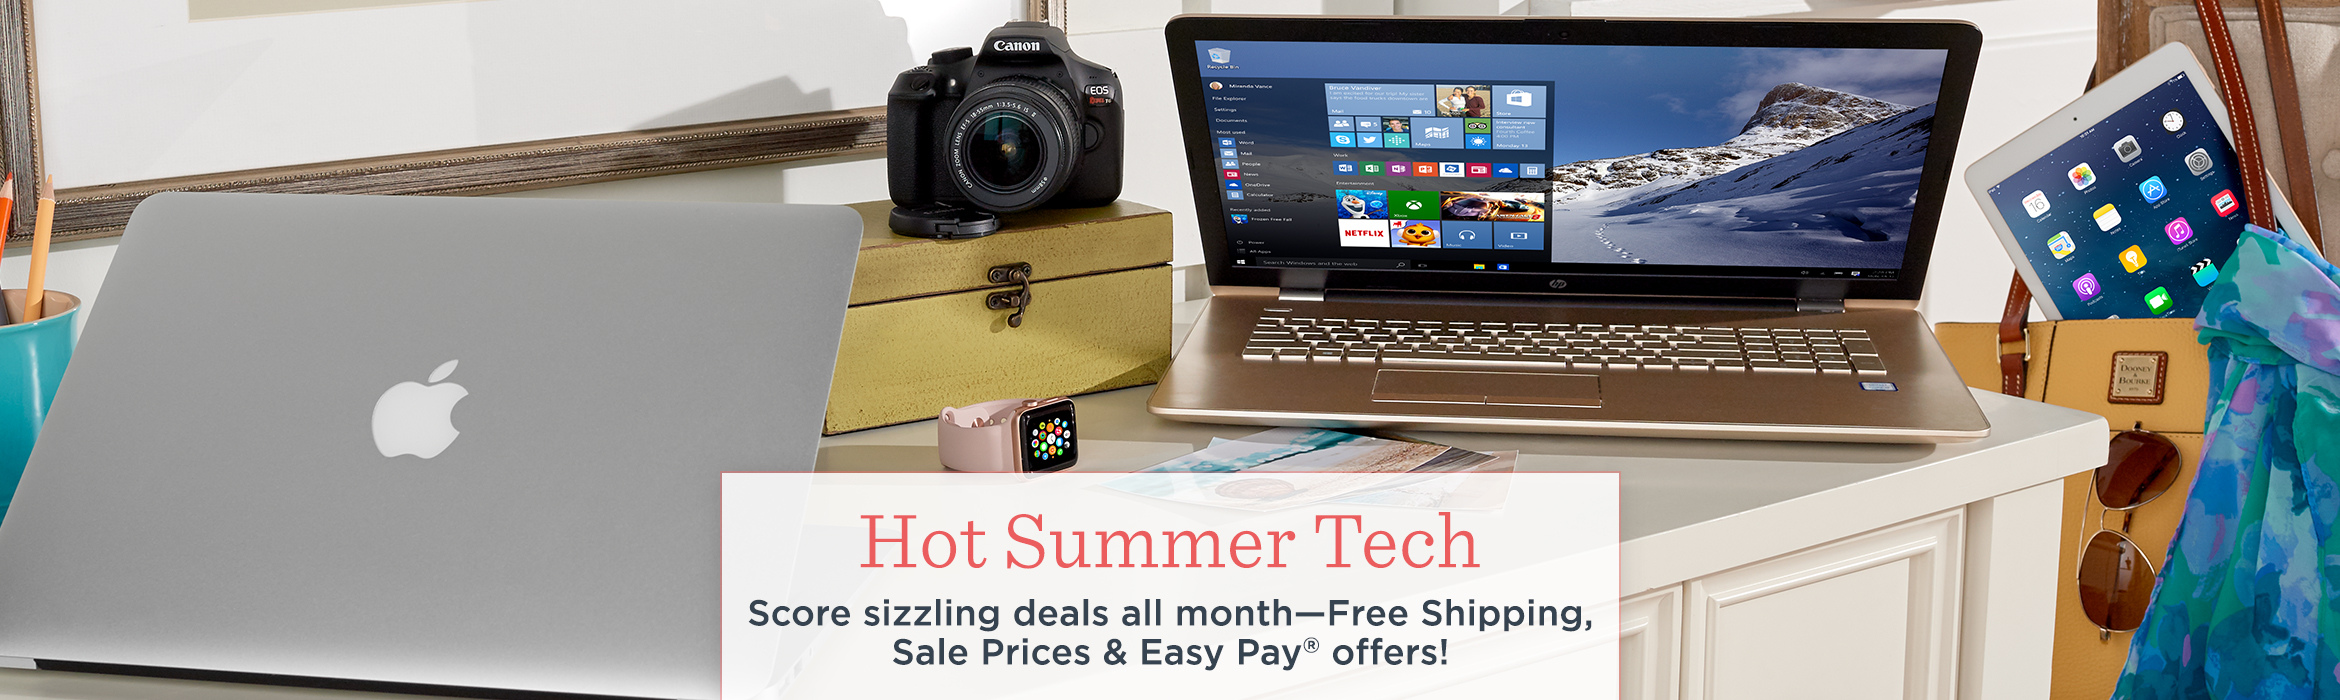 Hot Summer Tech. Score sizzling deals all month—Free Shipping, Sale Prices & Easy Pay® offers!